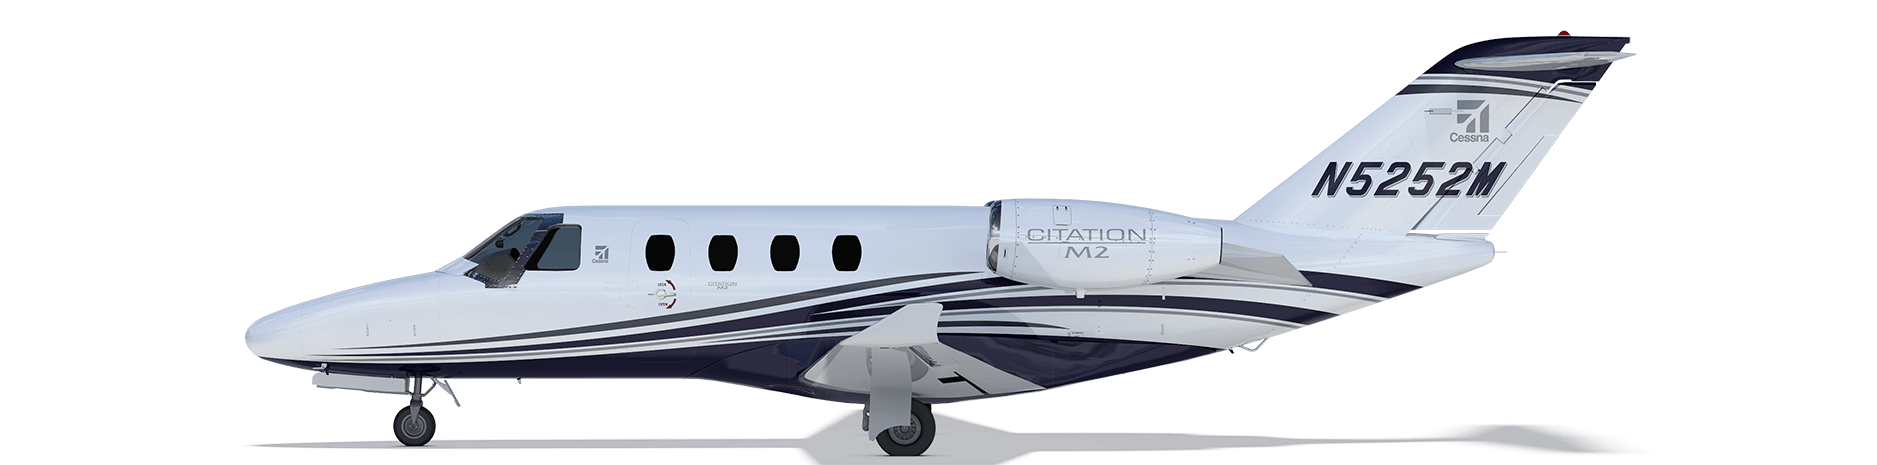 Cessna-Citation-525-1